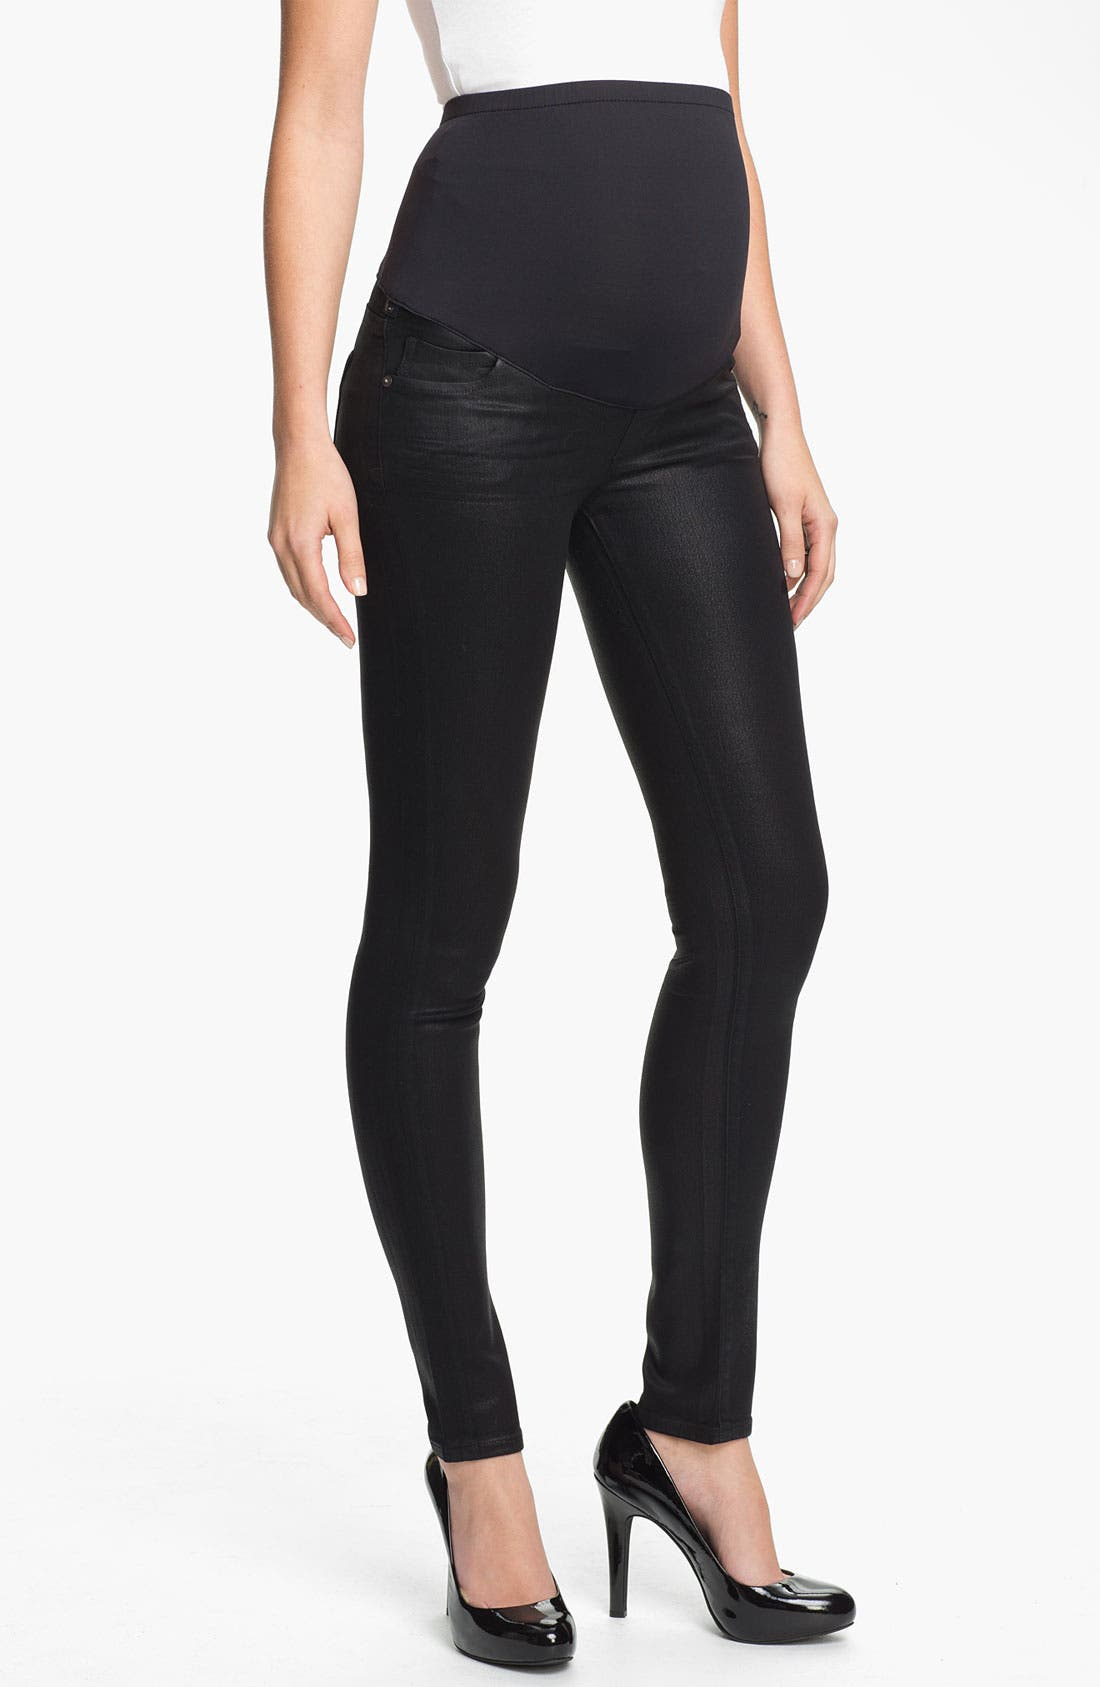 Alternate Image 1 Selected - Citizens of Humanity Coated Skinny Maternity Jeans (Black)